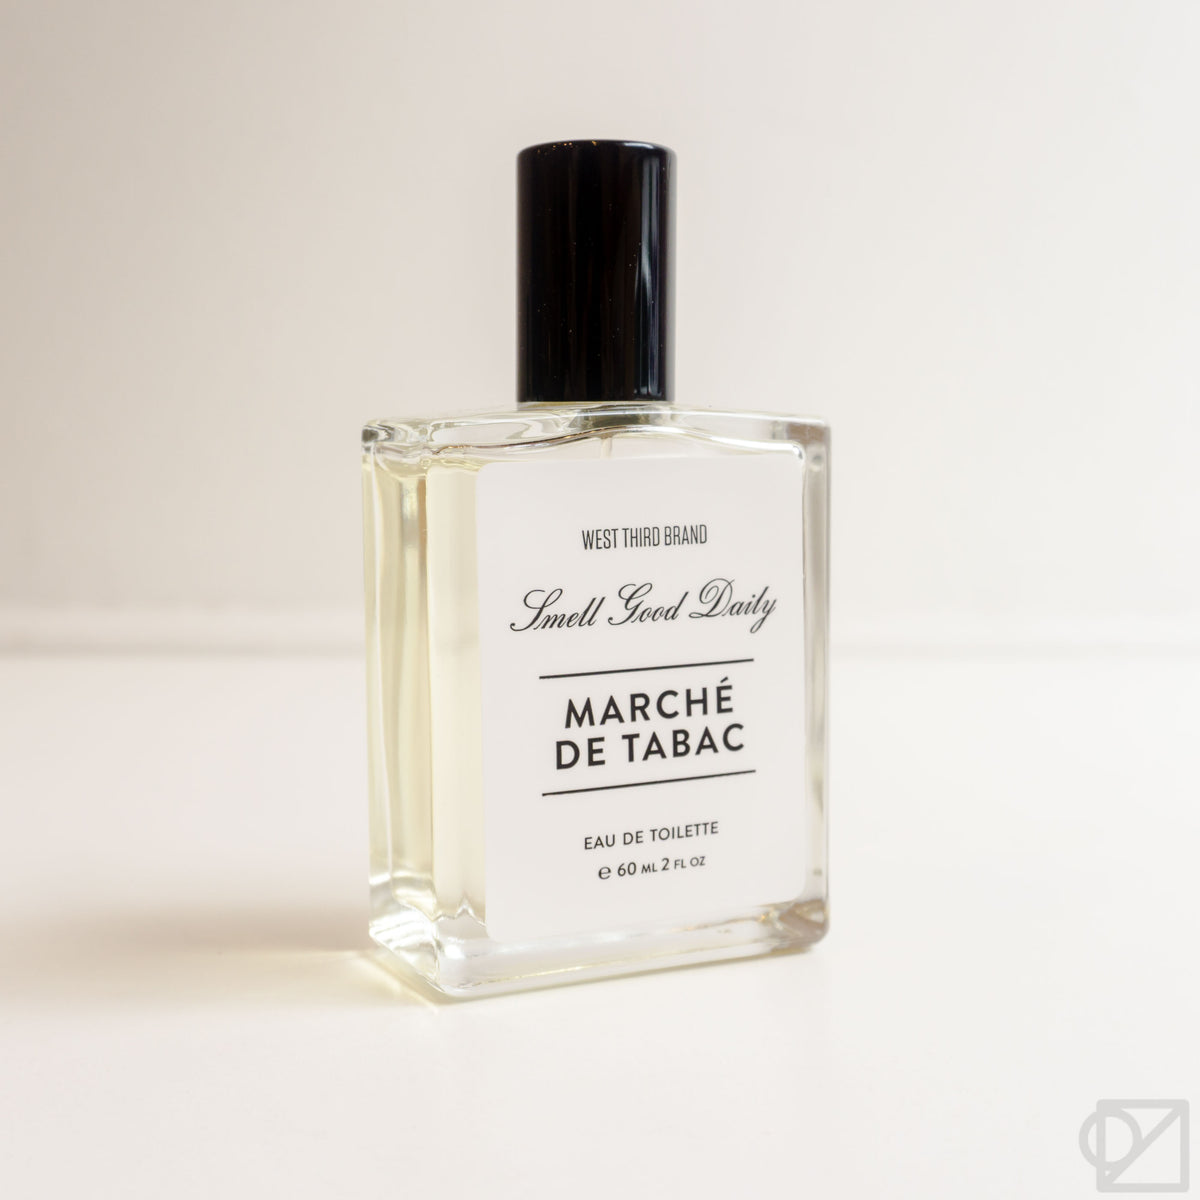 Smell Good Daily Tonic: Marche de Tabac